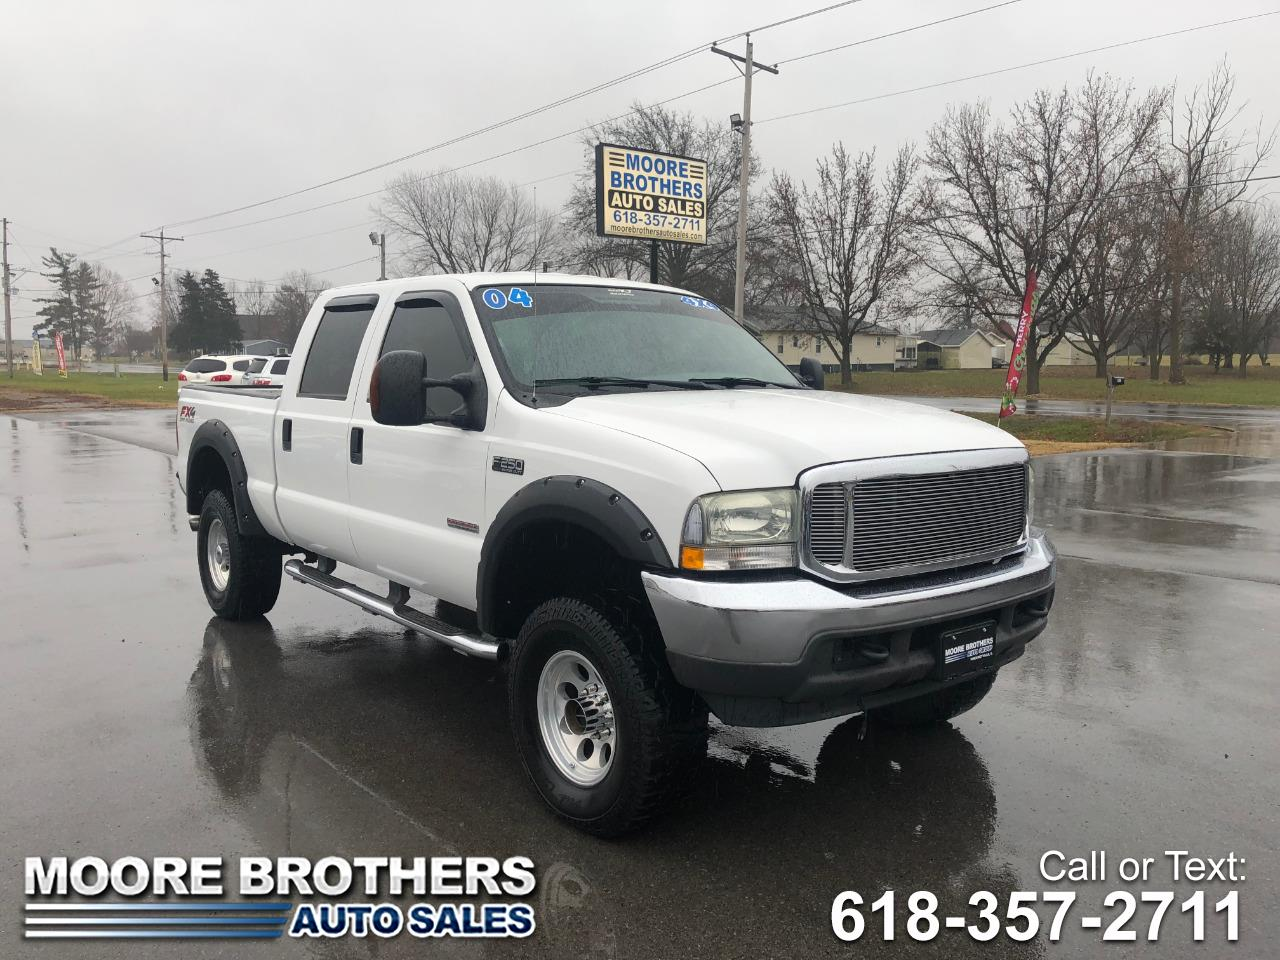 2004 Ford Super Duty F-250 Crew Cab XLT 4wd